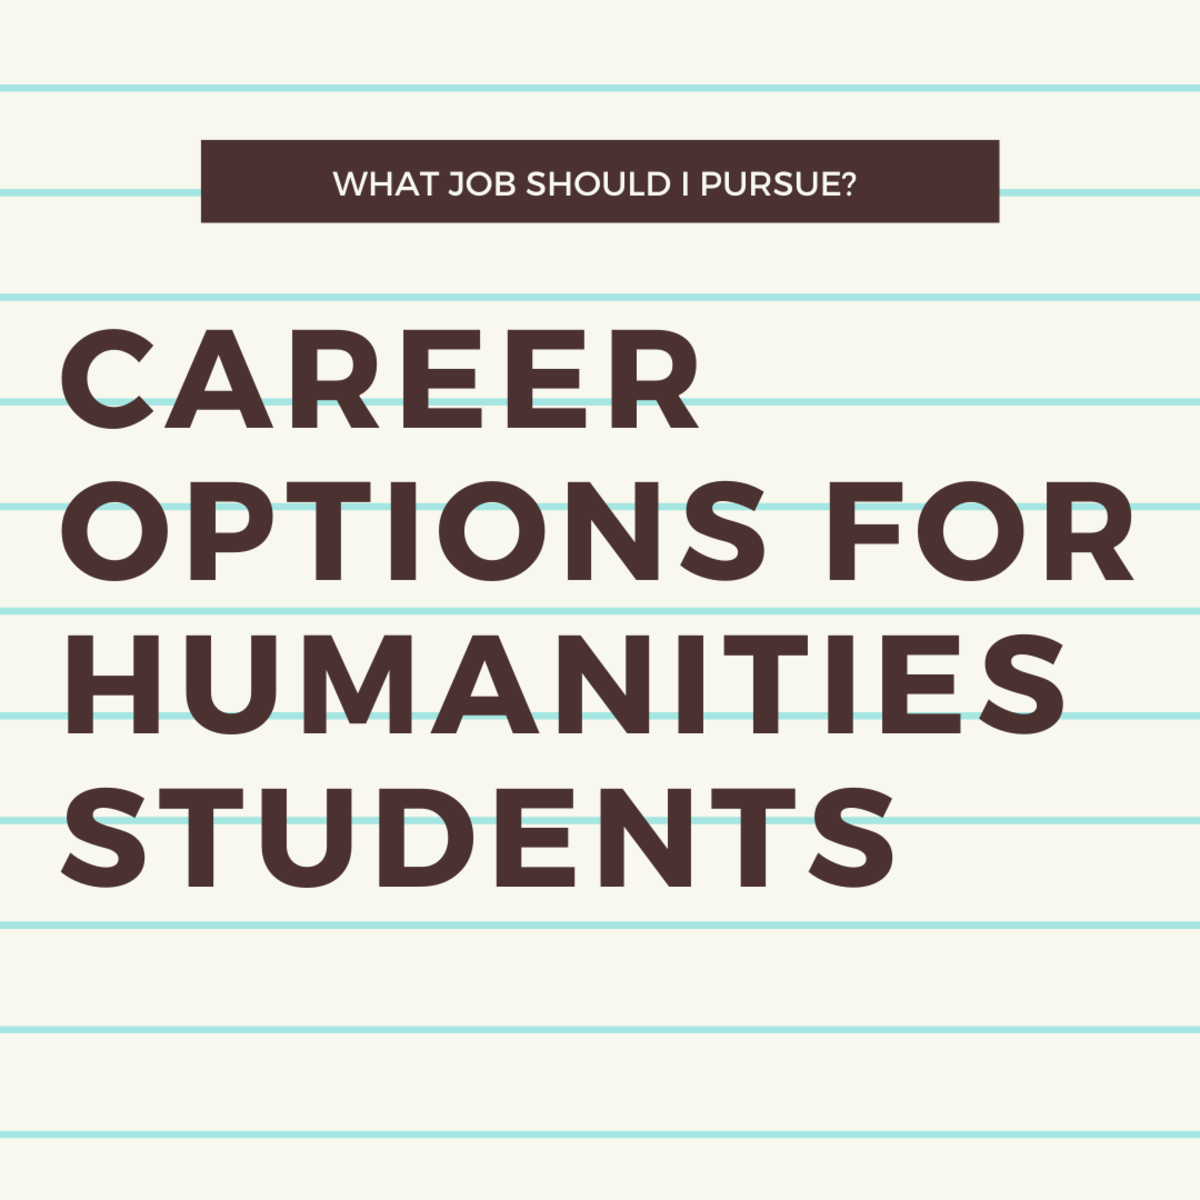 See some options for careers and further studies if you're a humanities student.